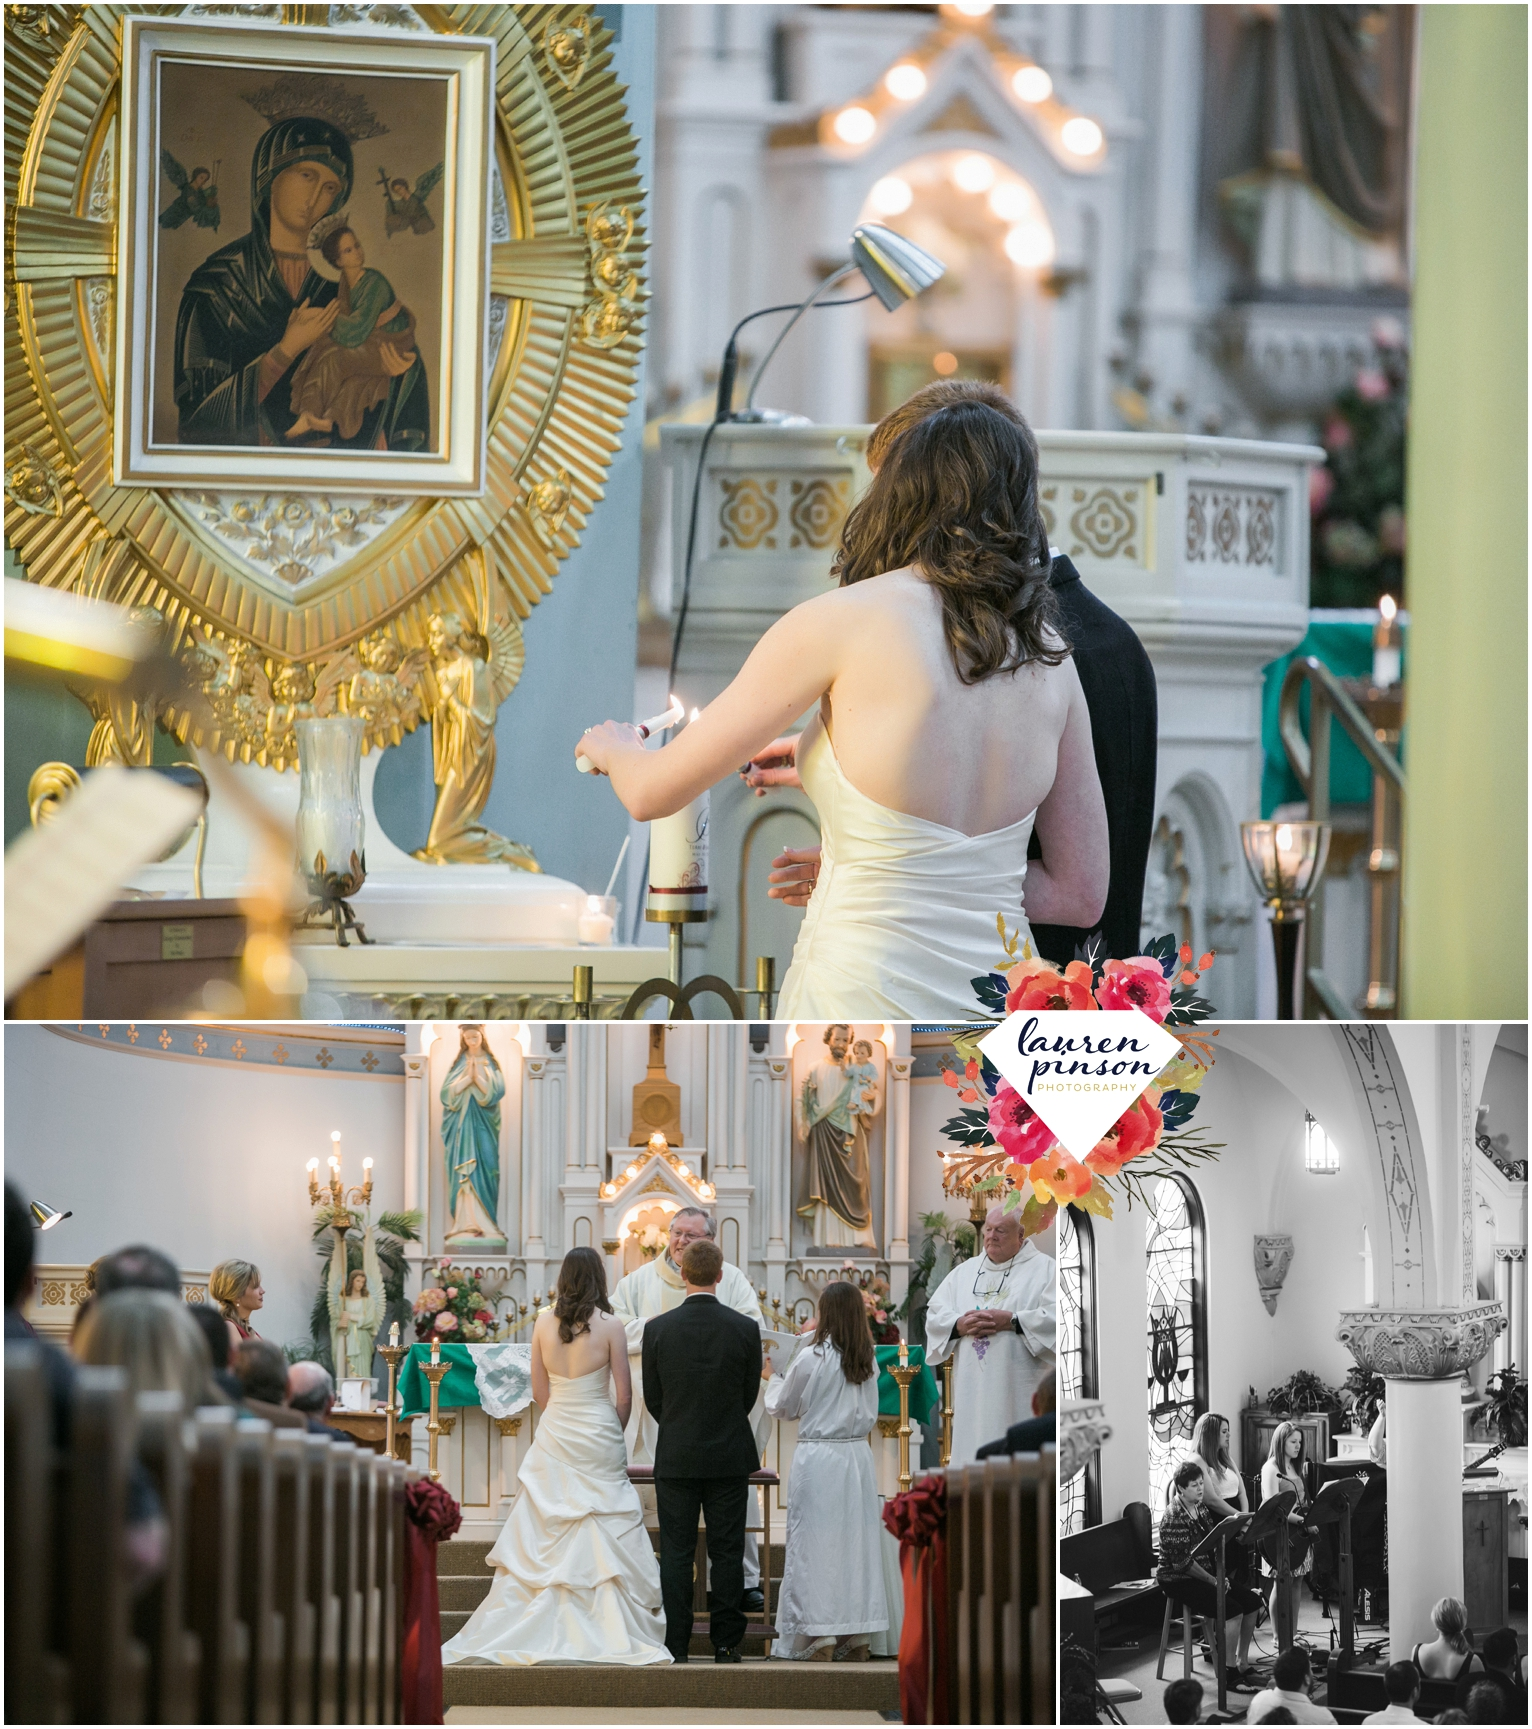 wichita-falls-wedding-photographer-OUR-Lady-queen-of-peace-catholic-wedding-the-forum-photography_0930.jpg